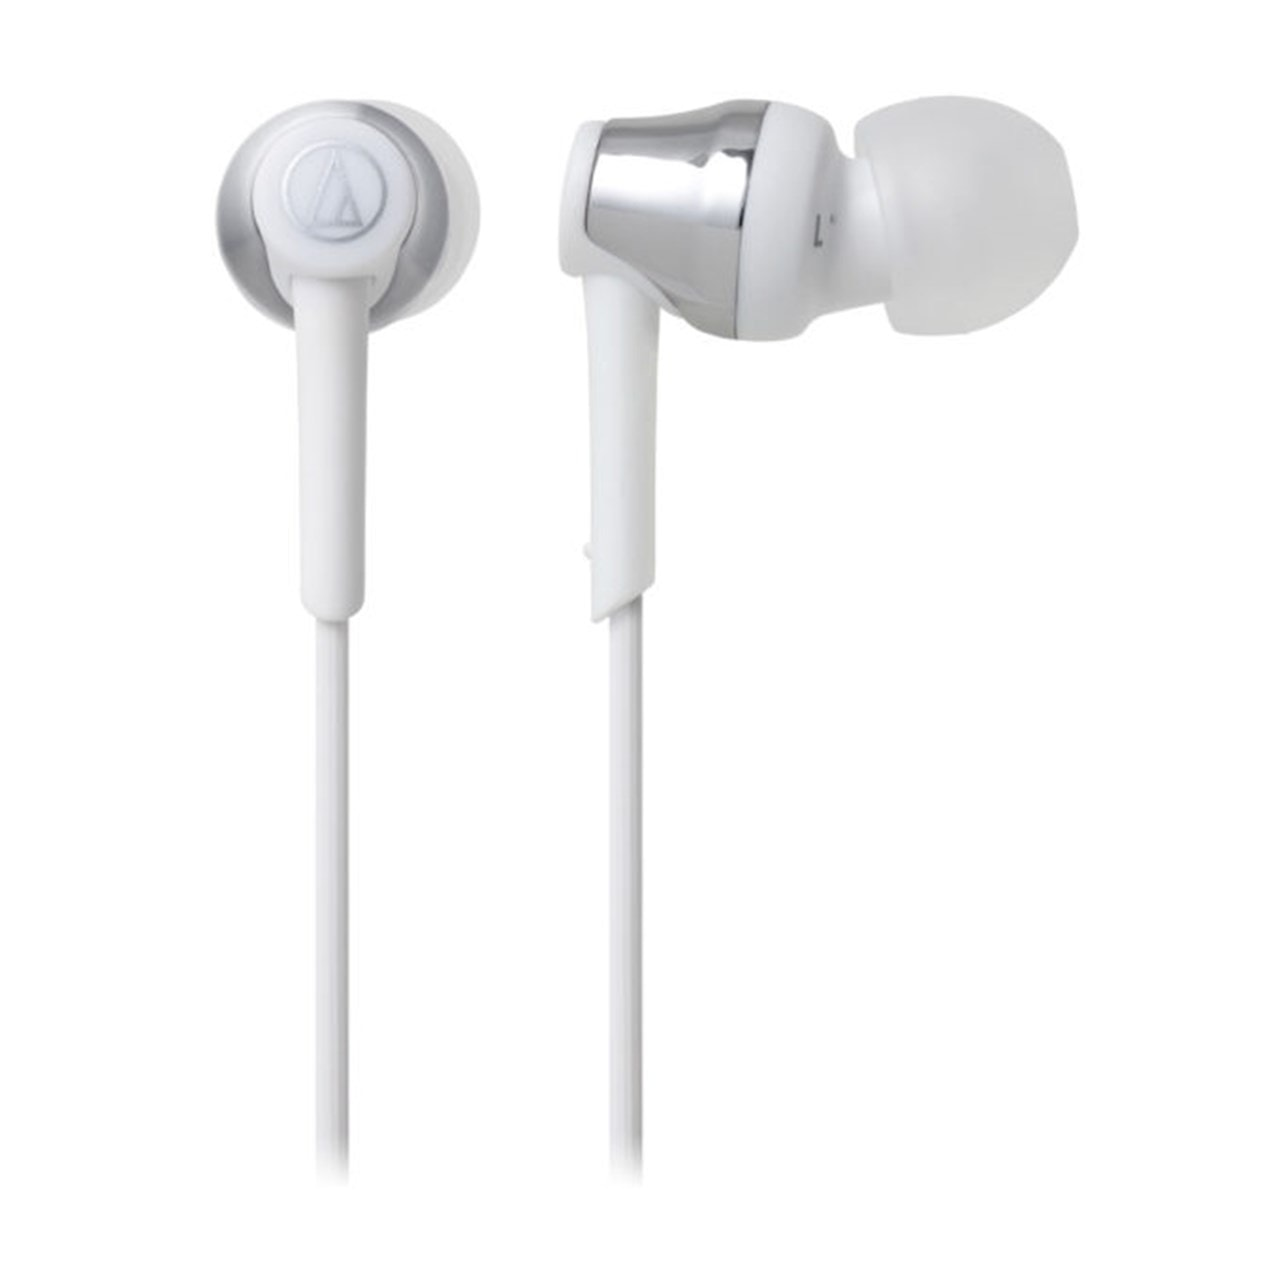 Audio Technica ATH-CKR35BT White and Silver Bluetooth Earphones - 2